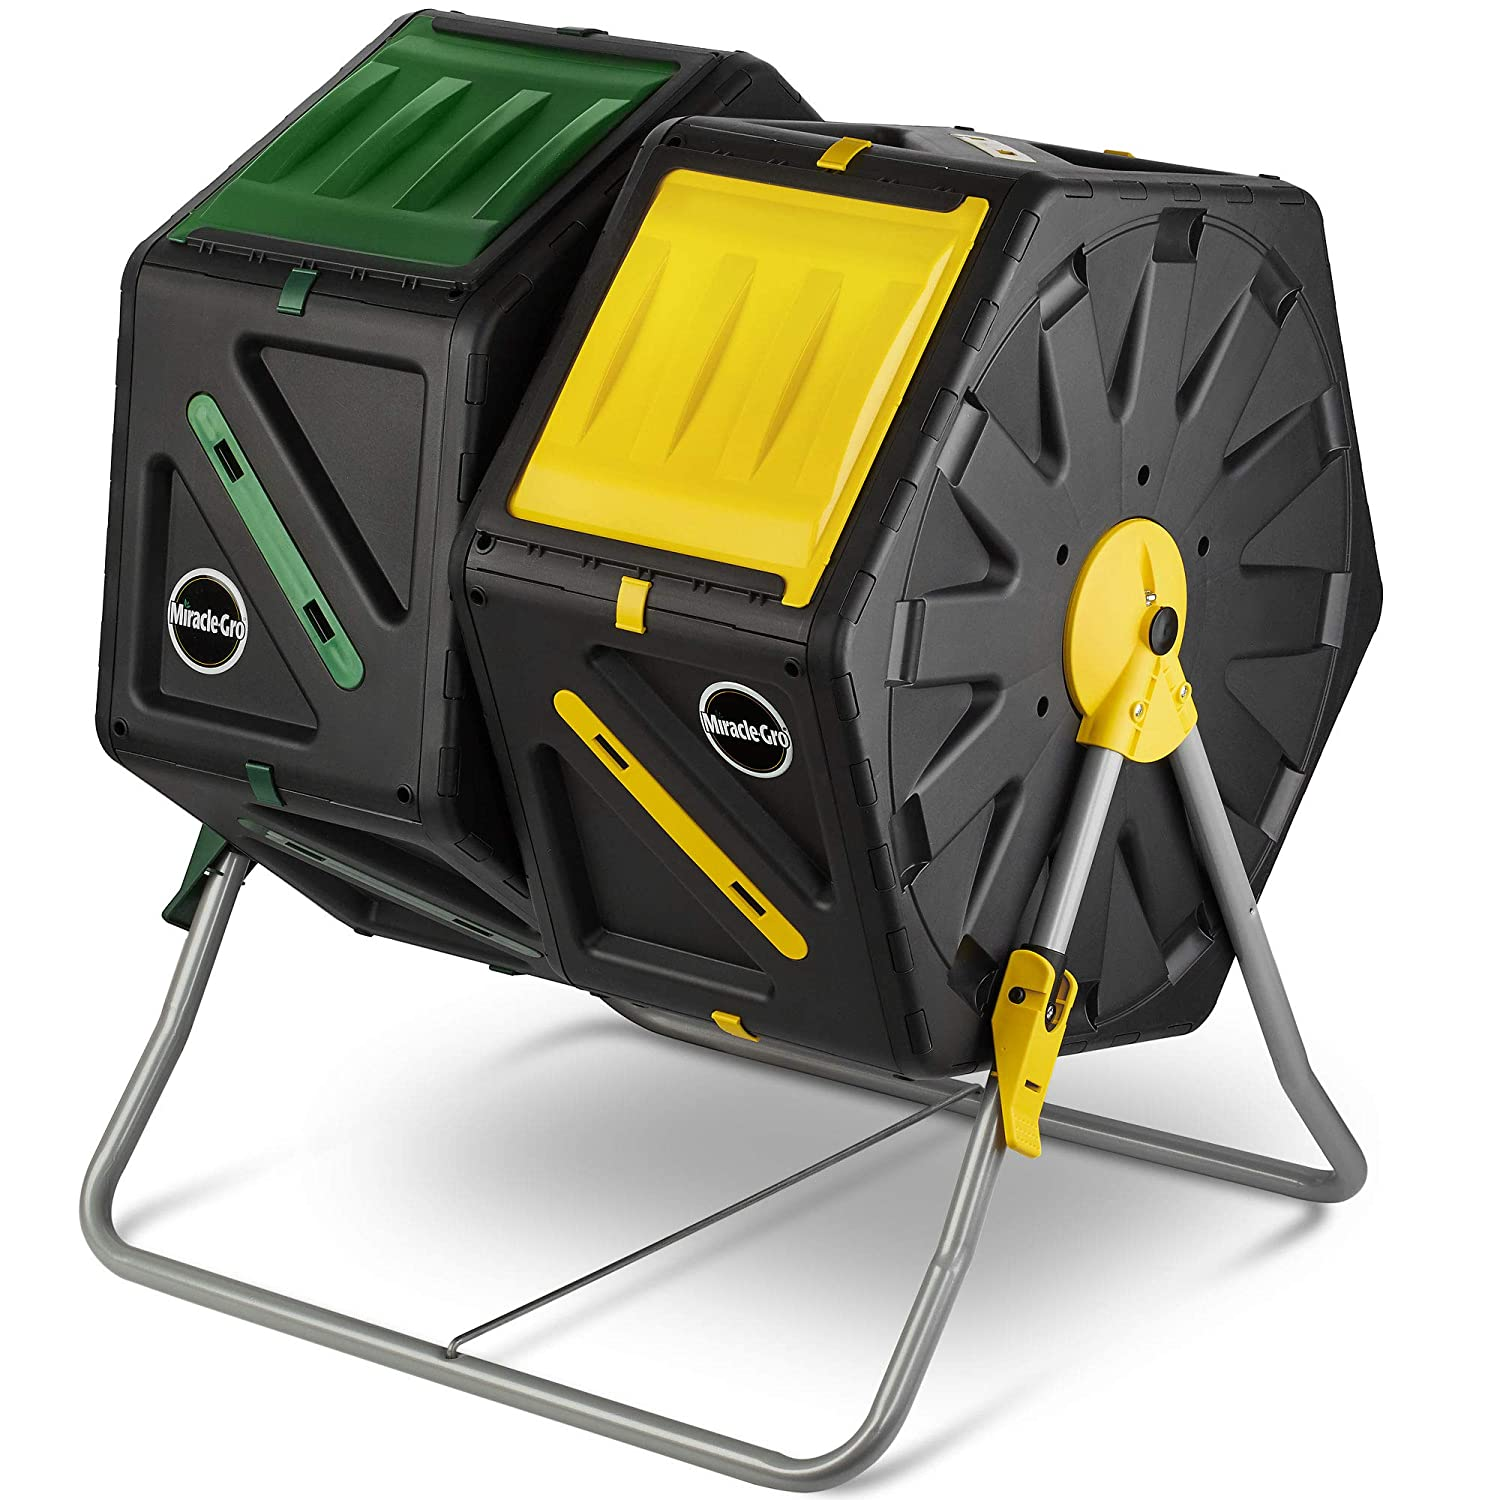 Miracle-Gro Dual Chamber Compost Tumbler in yellow and green color